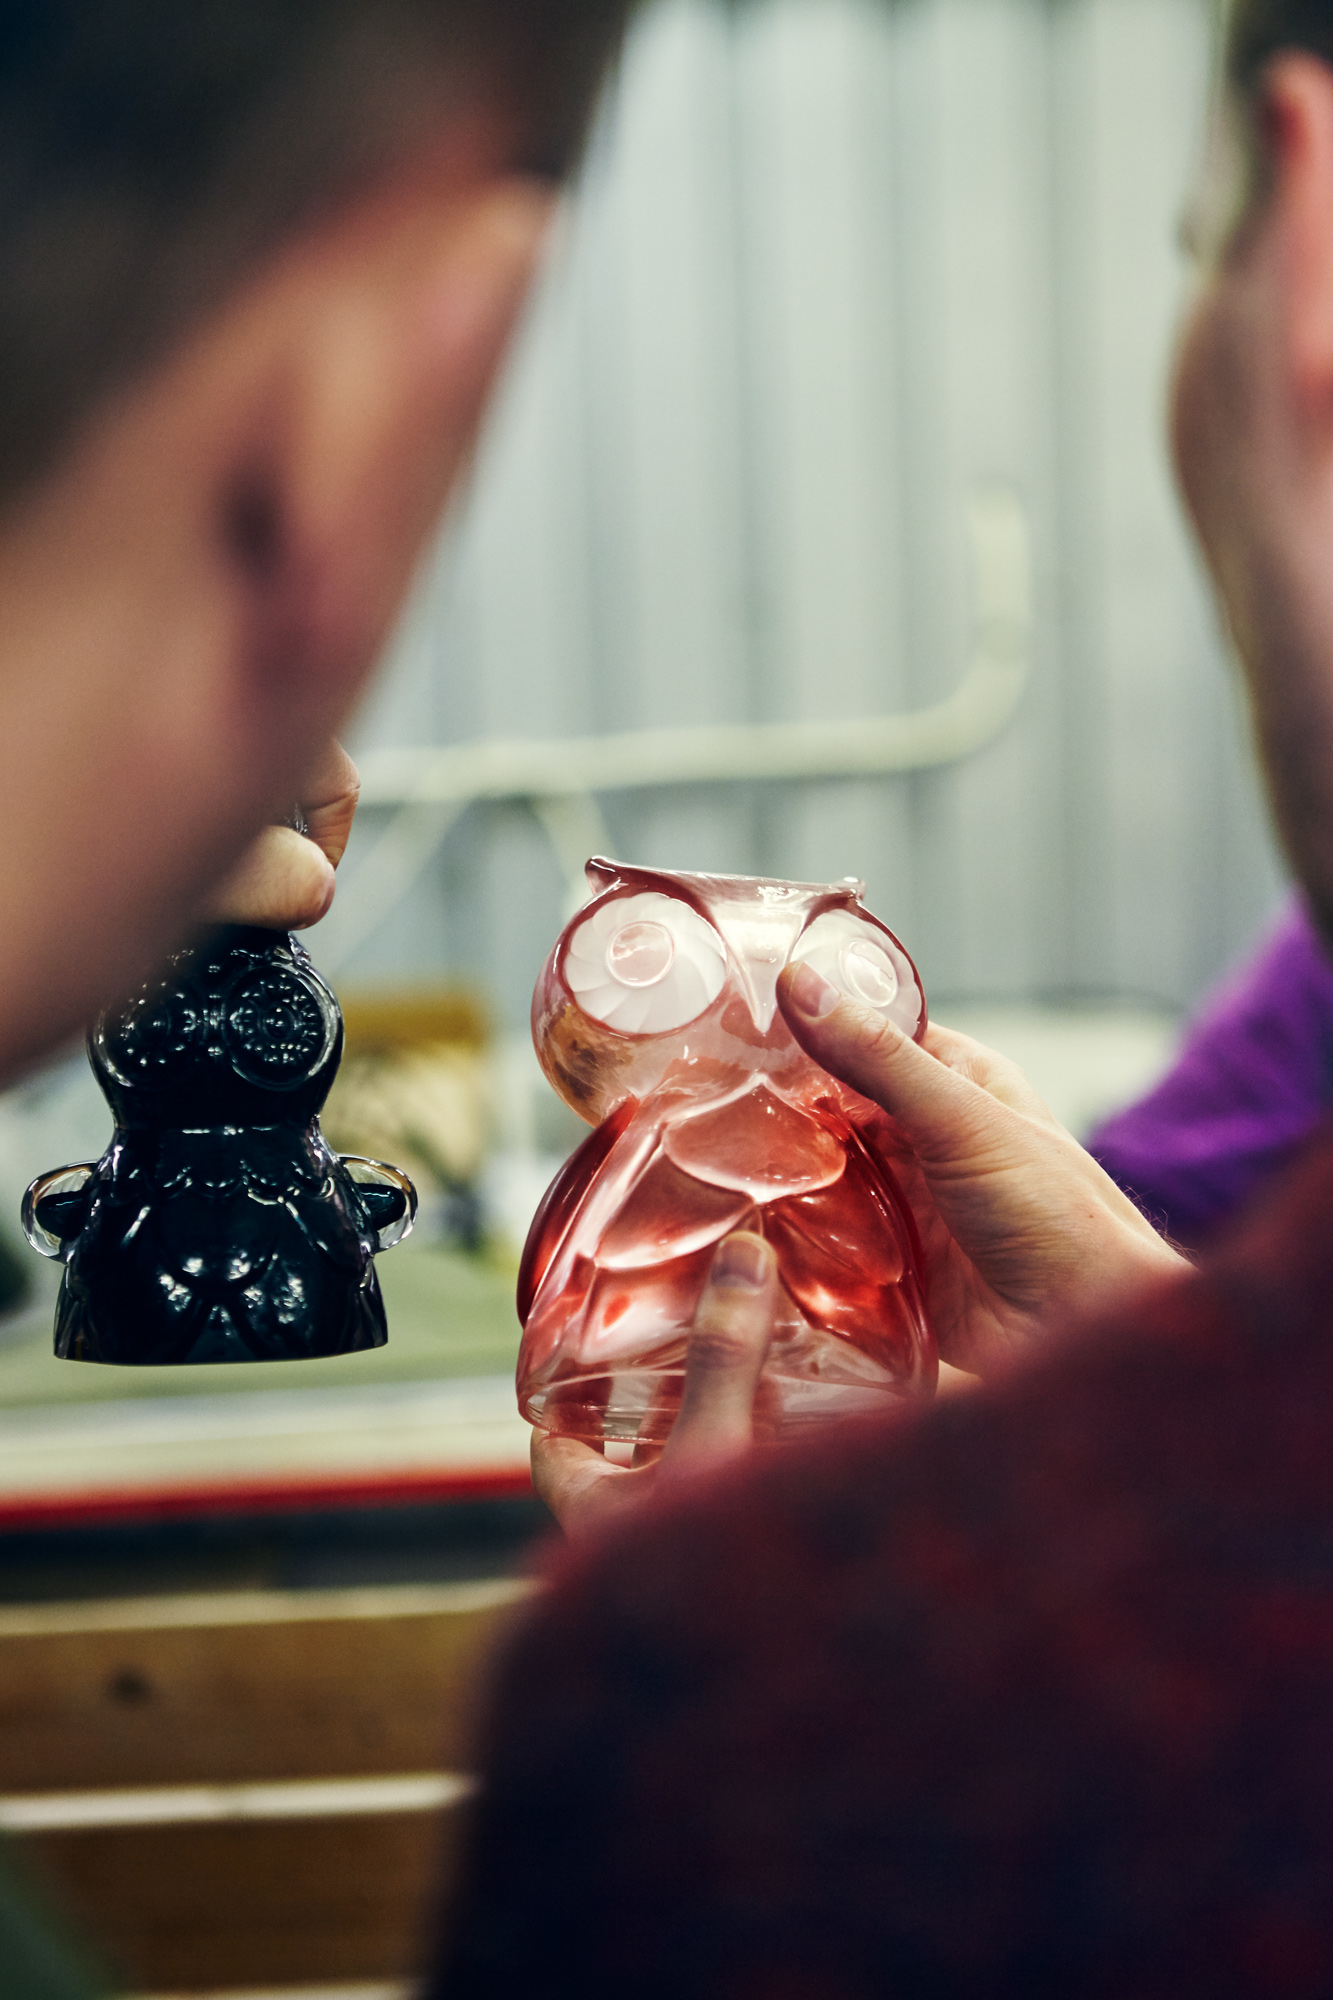 Two people inspecting coloured-glass figurines.